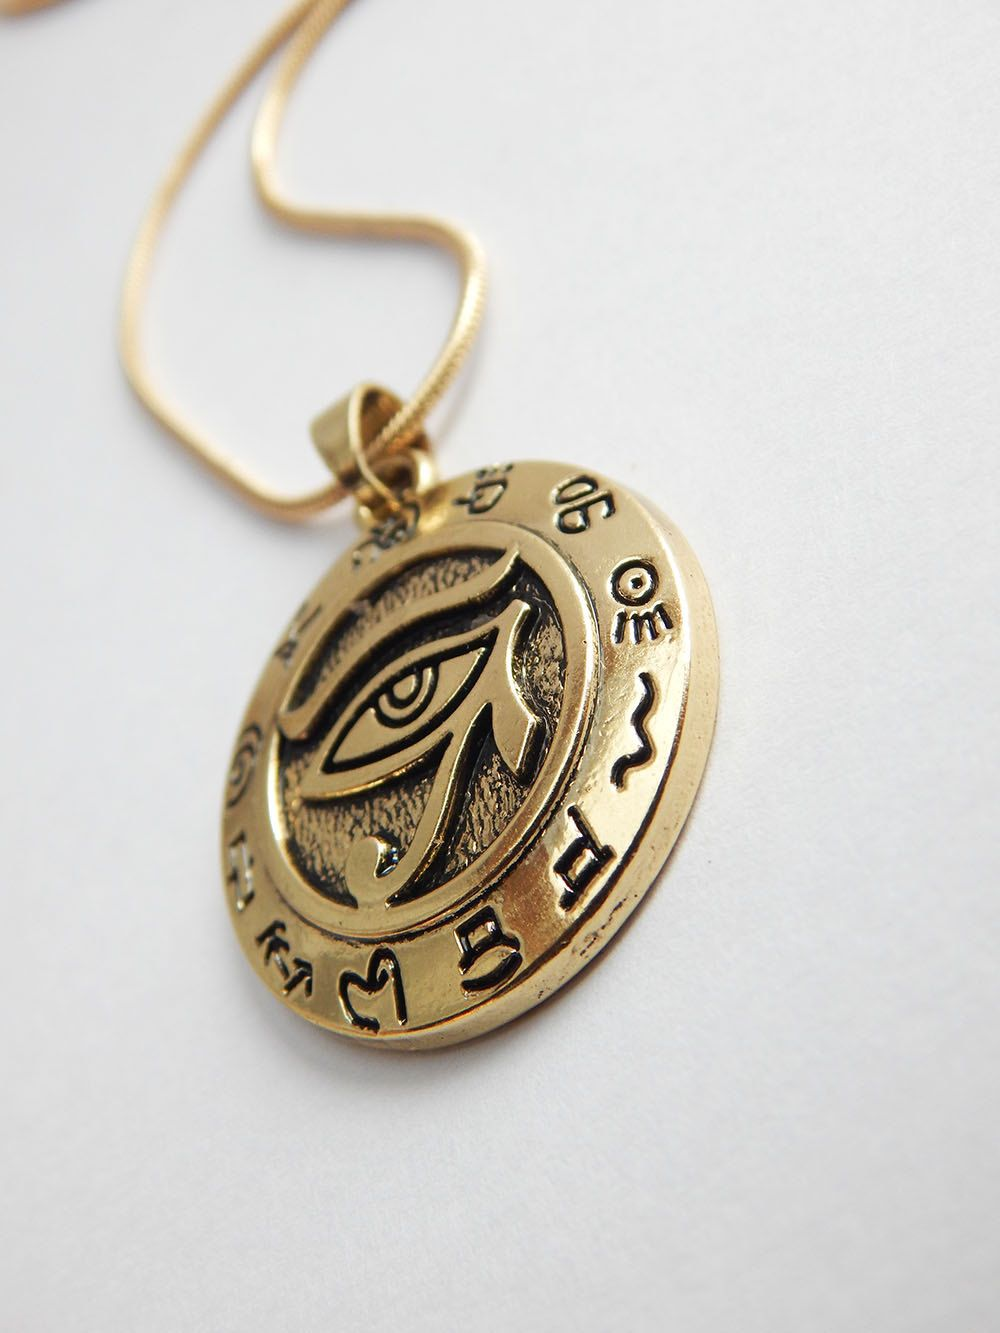 The eye of ra pendant necklace gold egyptian jewelry african unisex the eye of ra pendant necklace gold egyptian jewelry african unisex small pendant afrocentric eye of horus mens necklace aloadofball Images